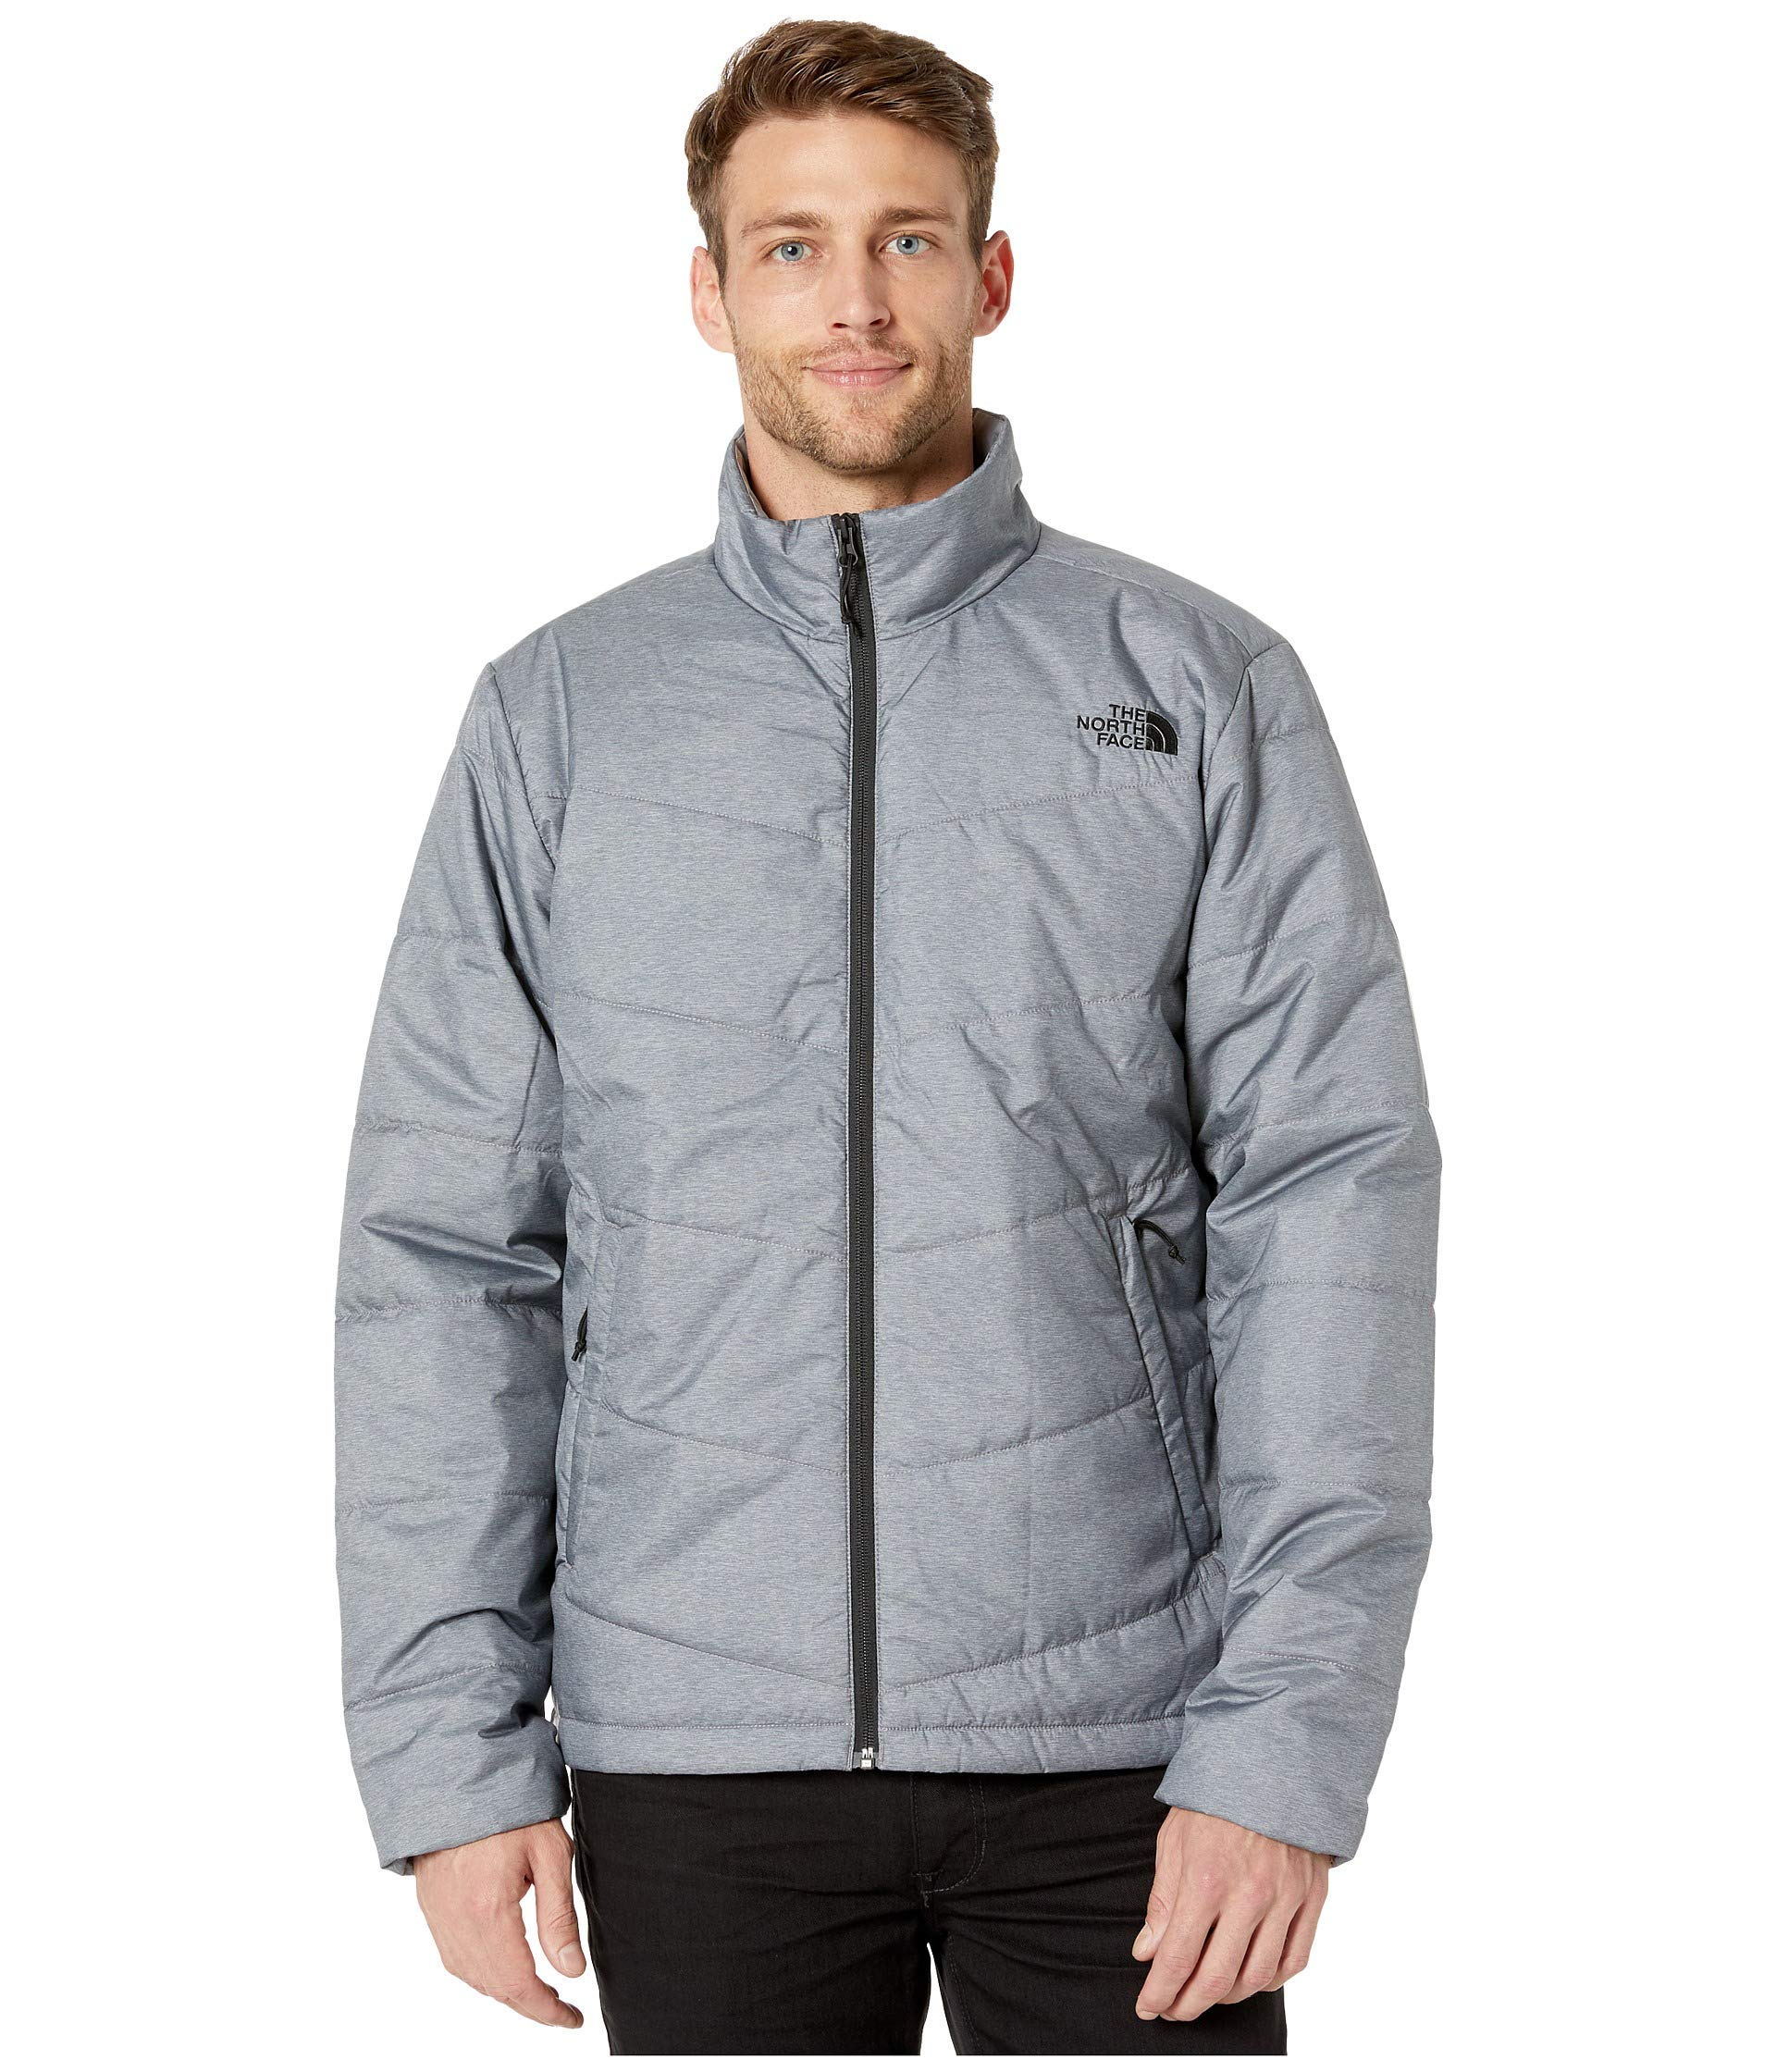 The North Face Men's Junction Insulated Jacket by The North Face